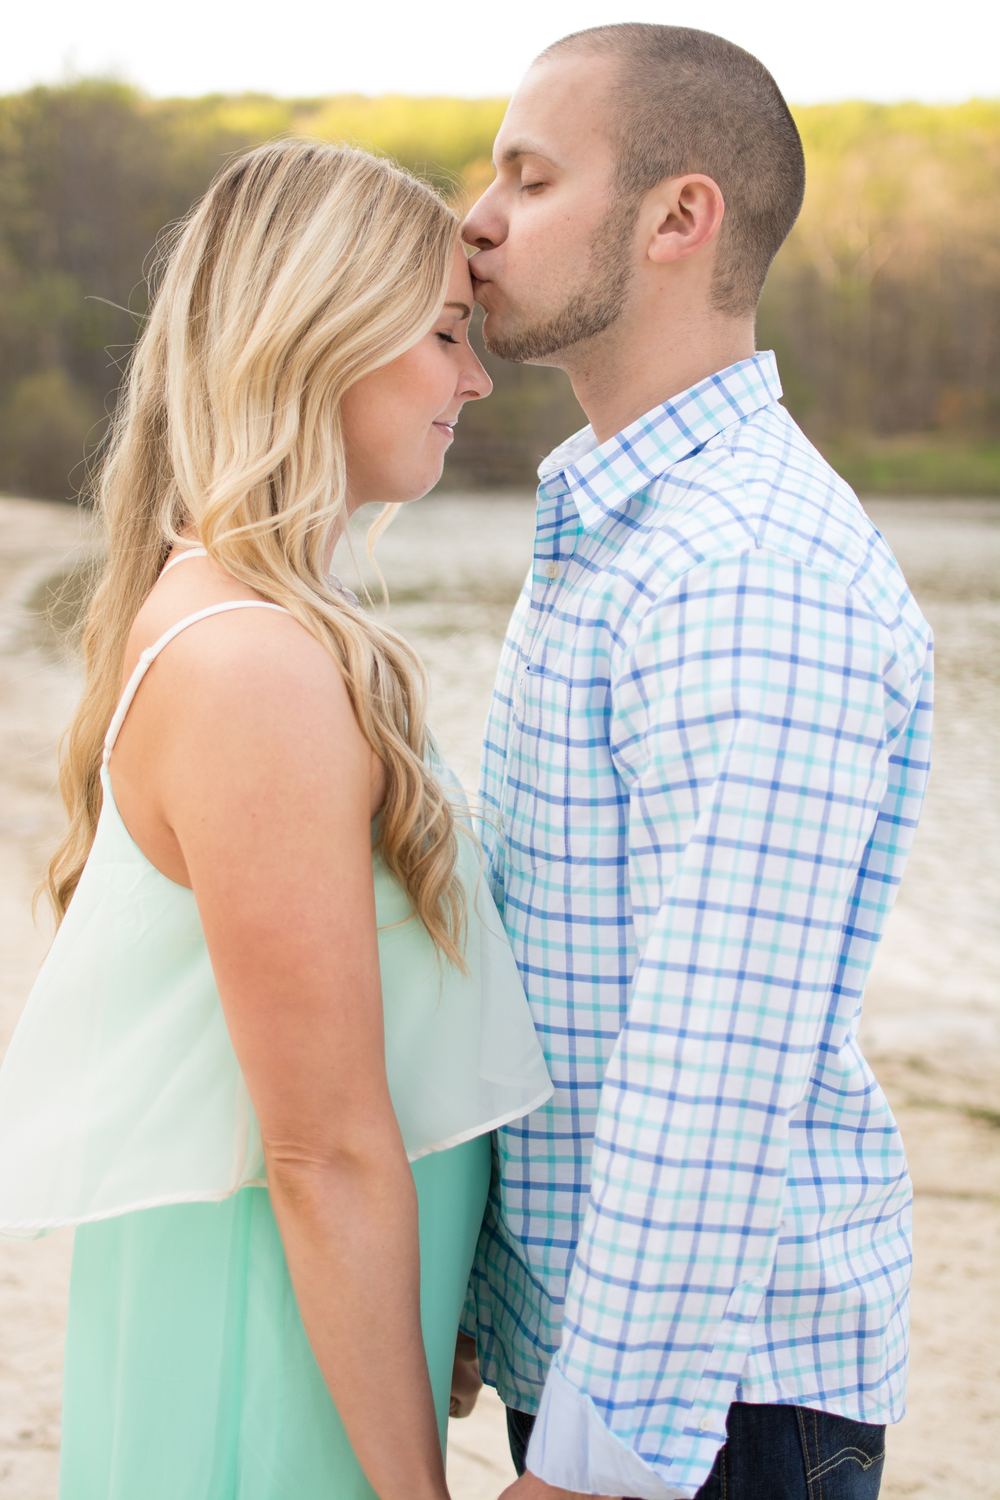 cunningham falls engagement session photo couple forehead kiss